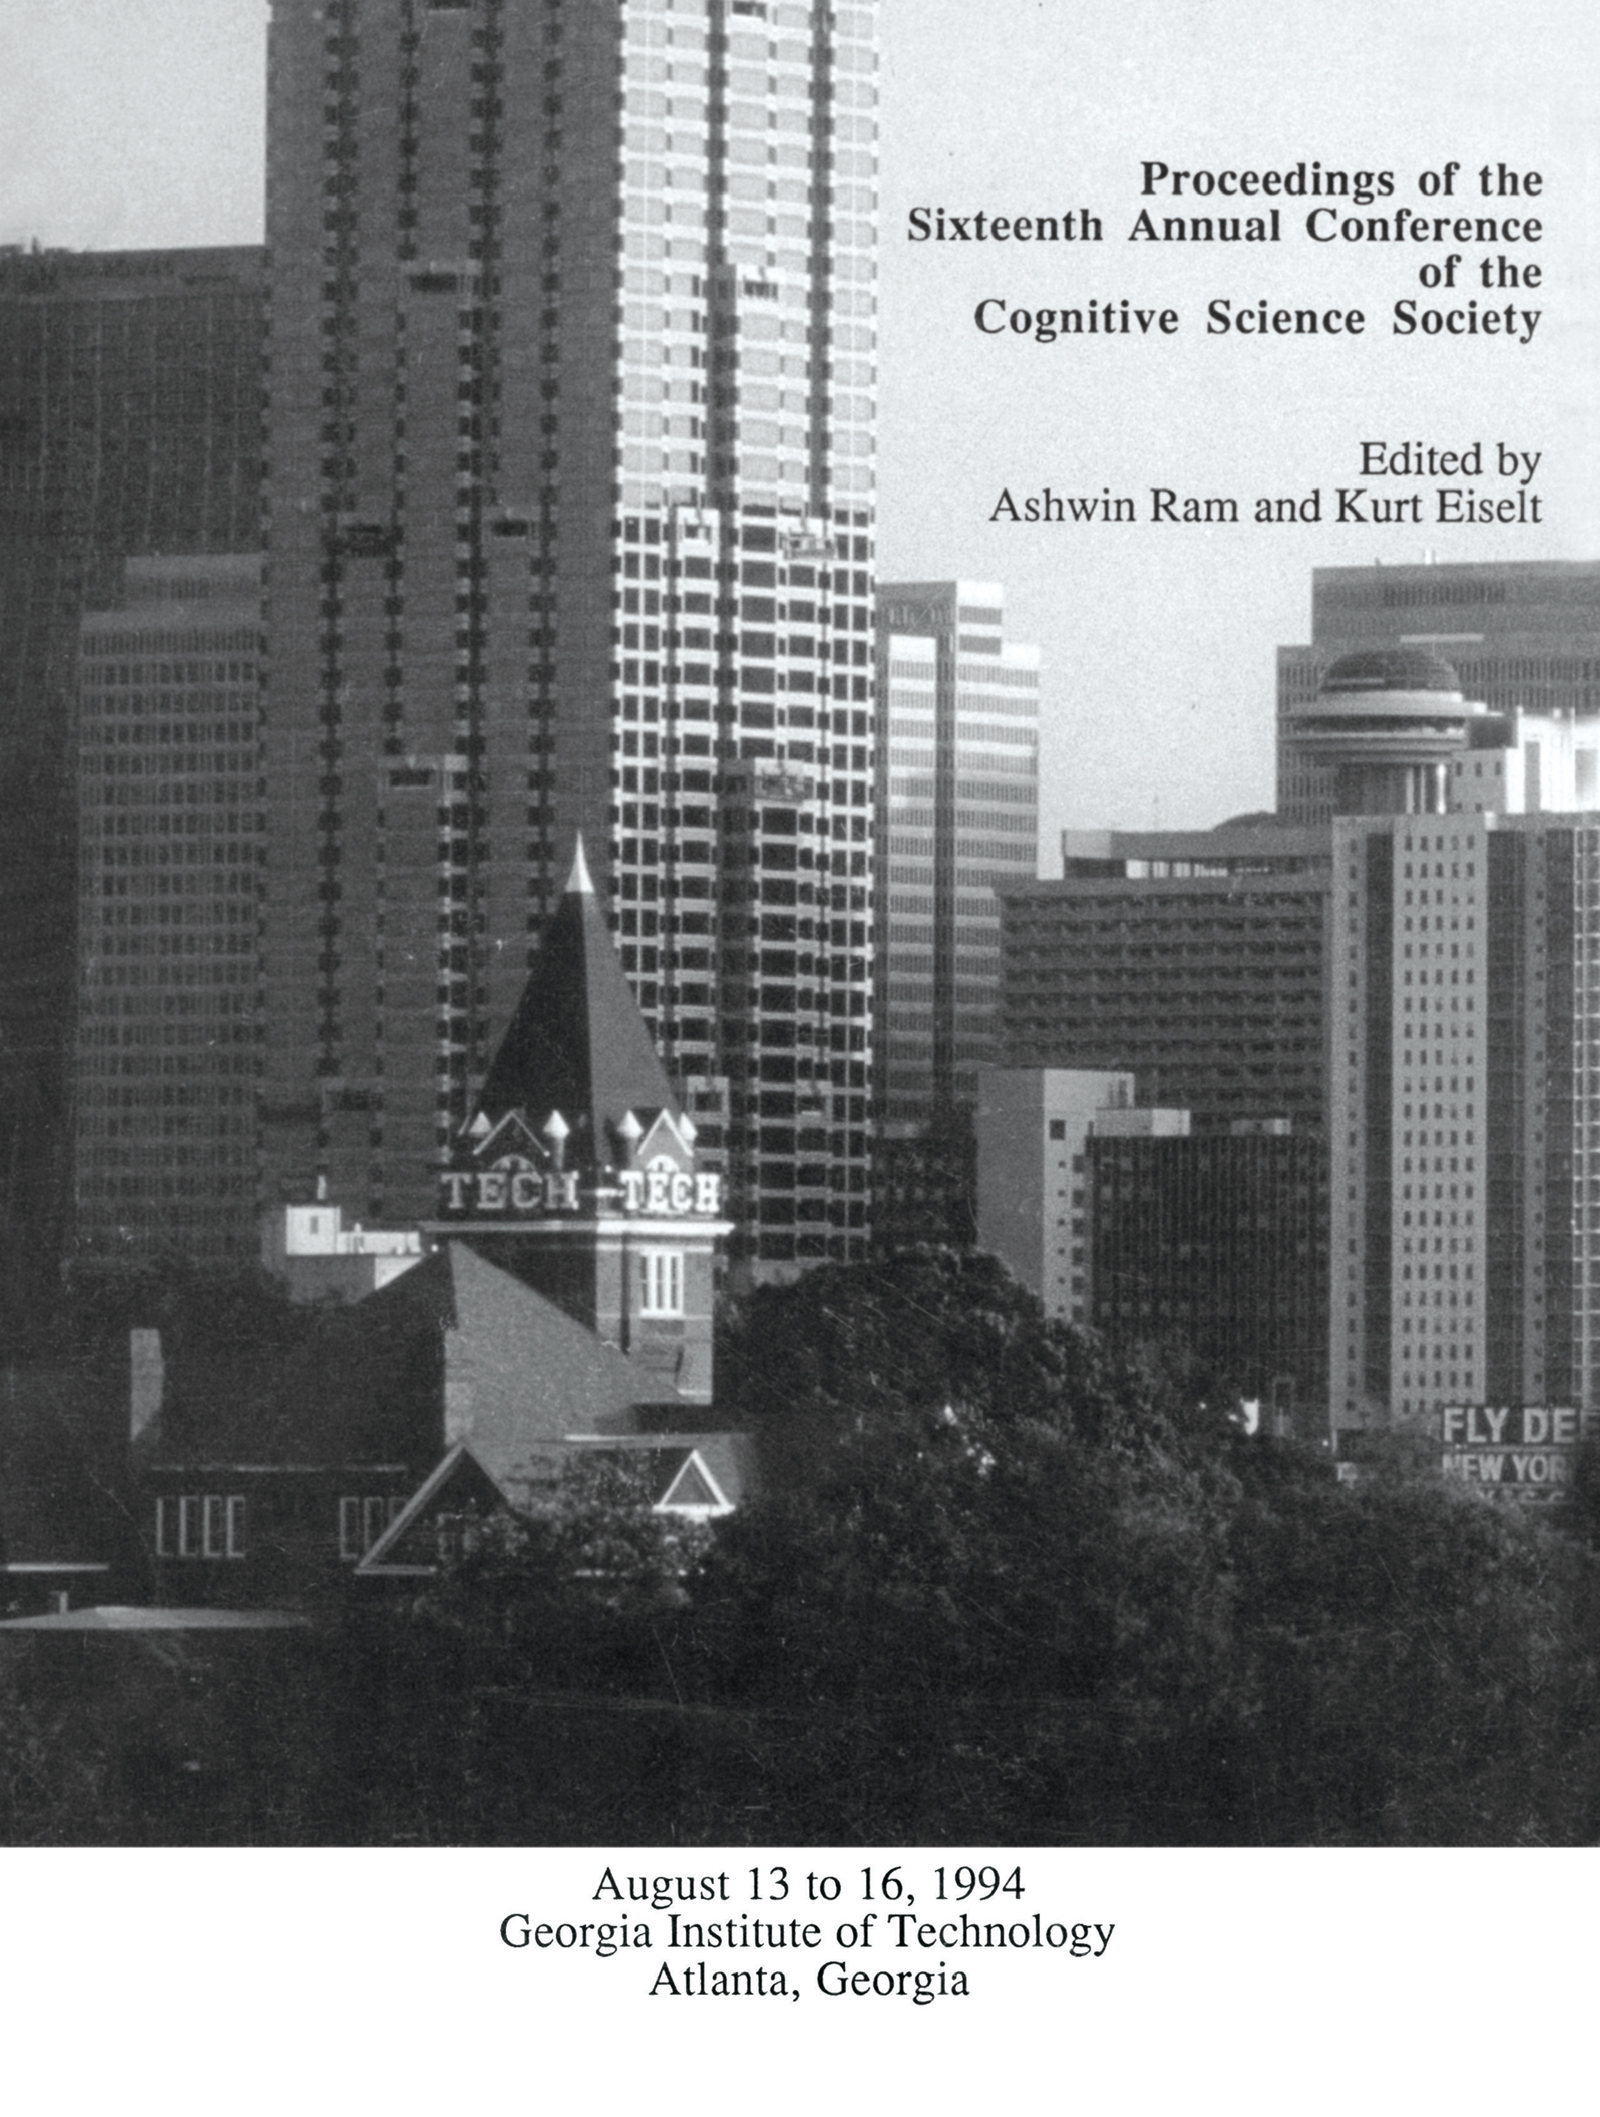 Proceedings of the Sixteenth Annual Conference of the Cognitive Science Society: Atlanta, Georgia, 1994 book cover